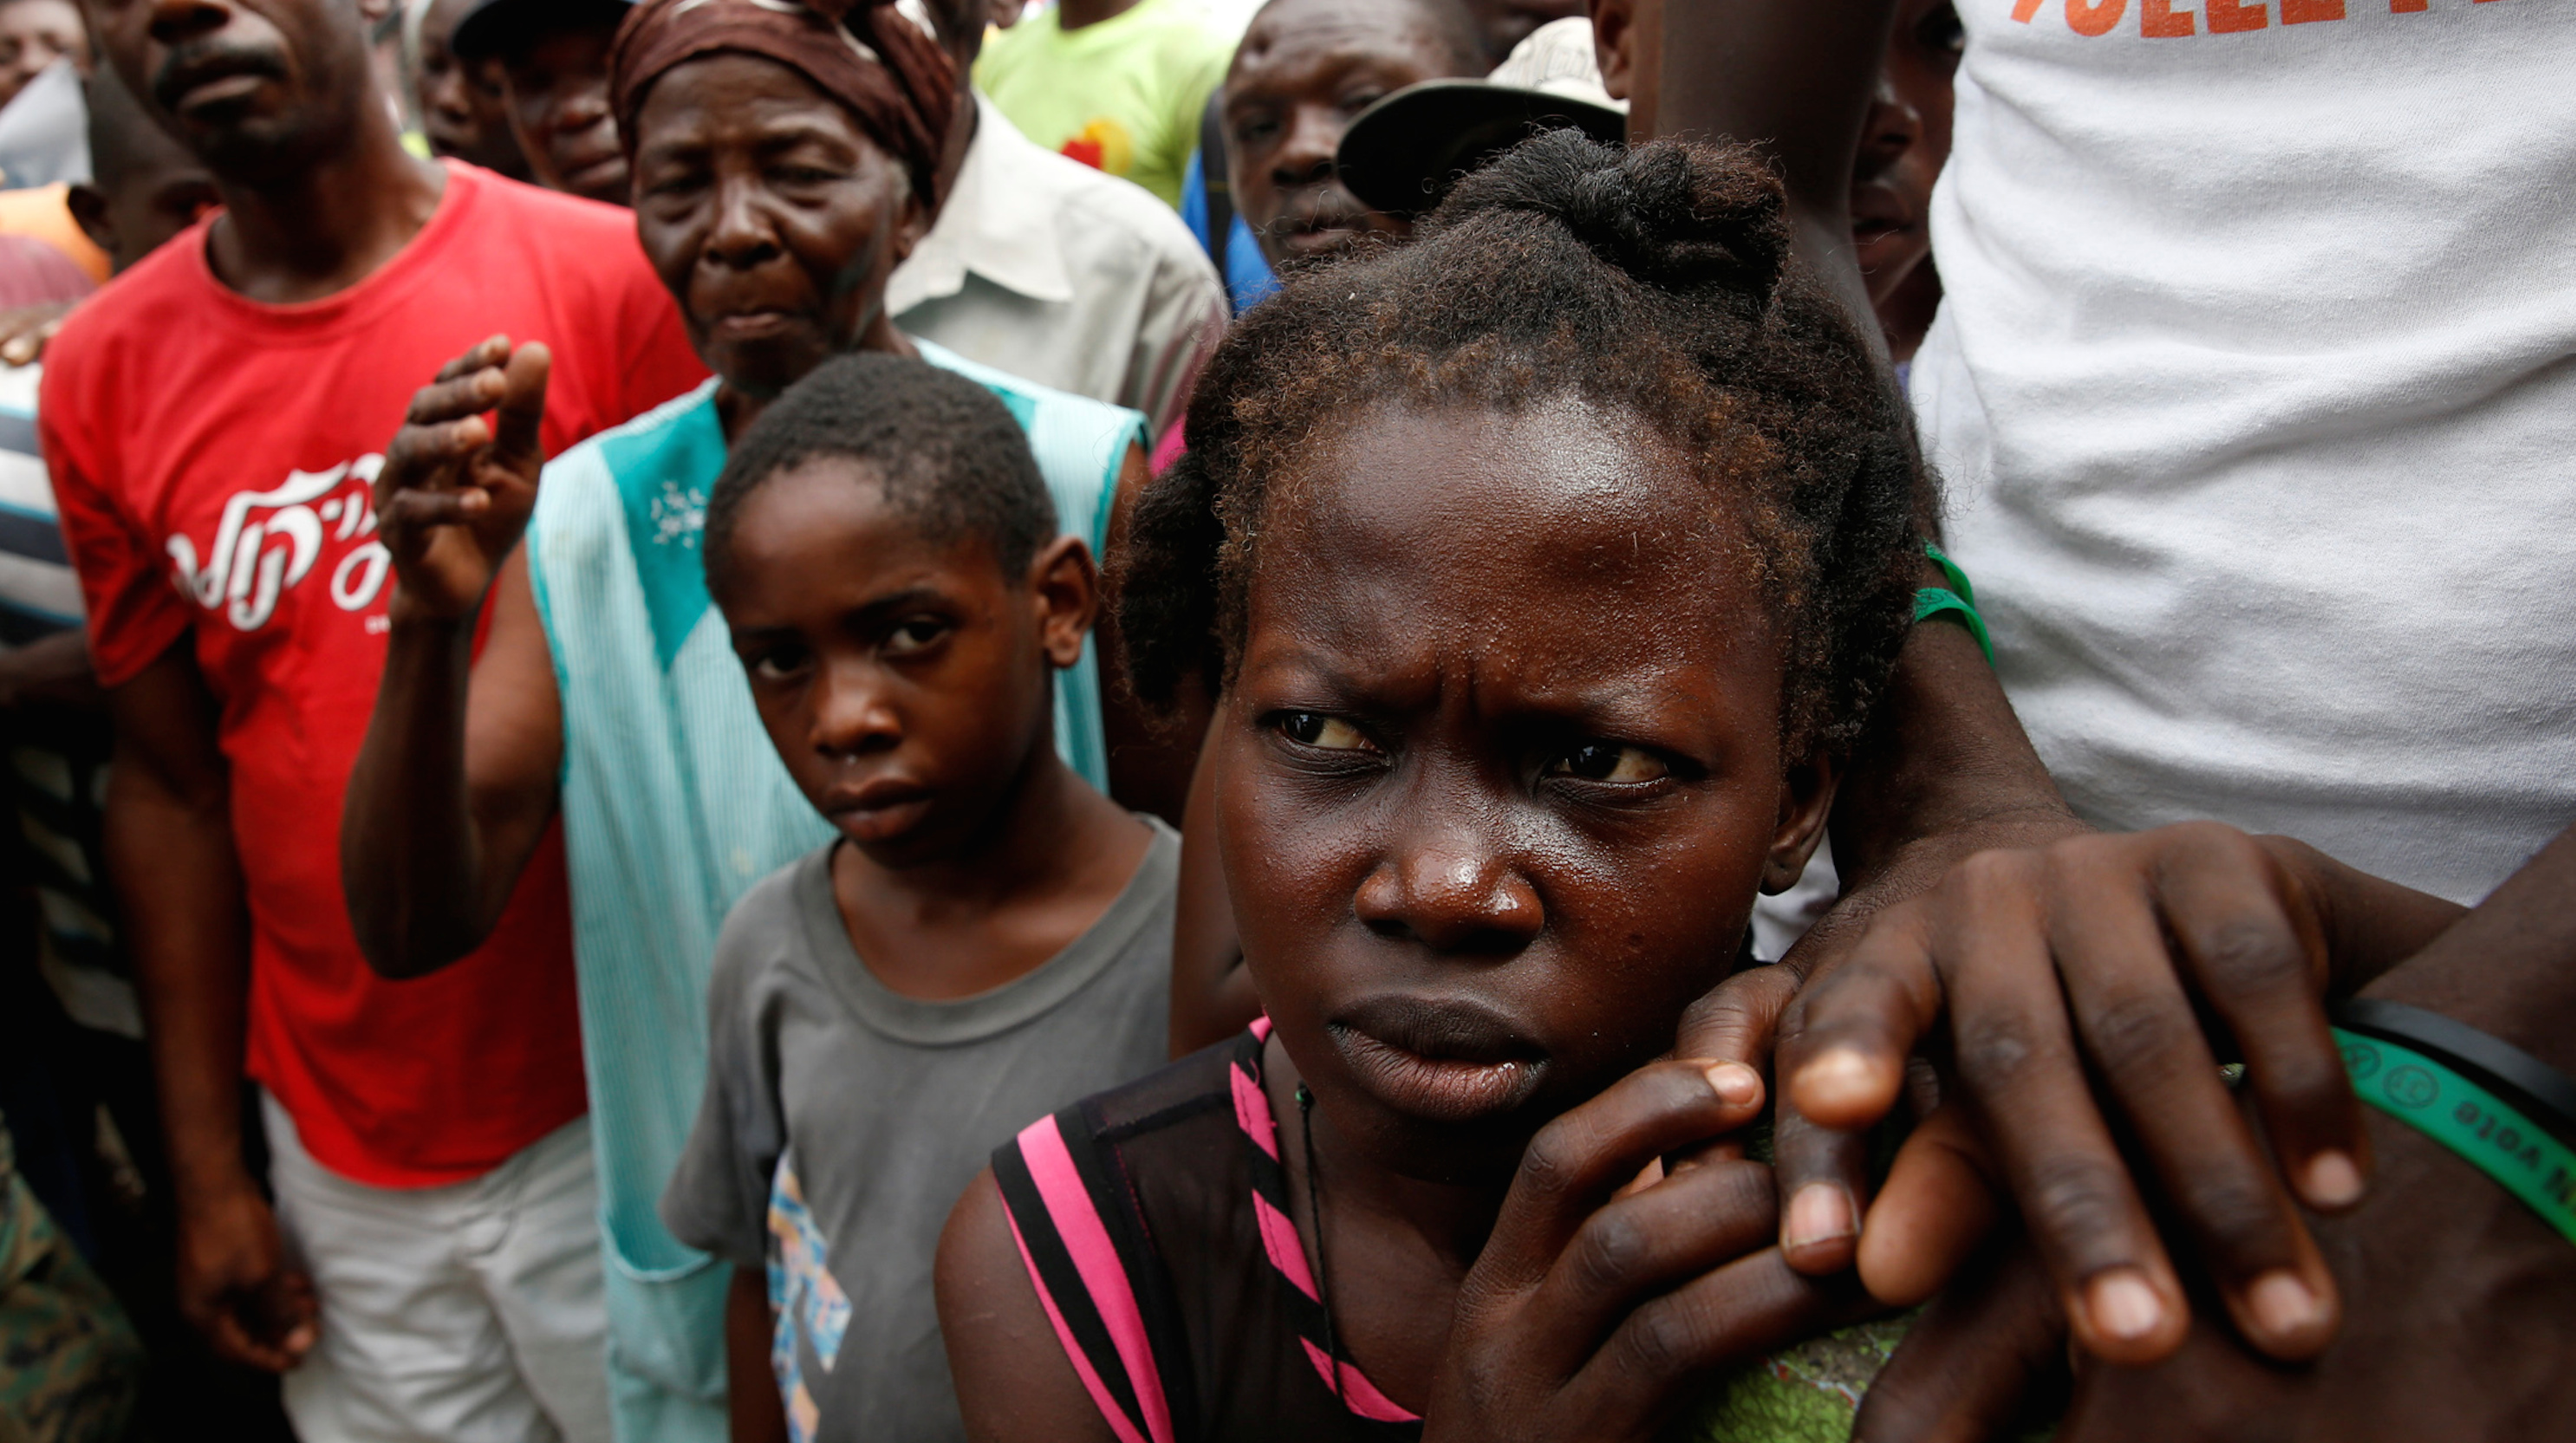 People wait for food to be handed out after Hurricane Matthew hit Jeremie, Haiti, October 18, 2016.